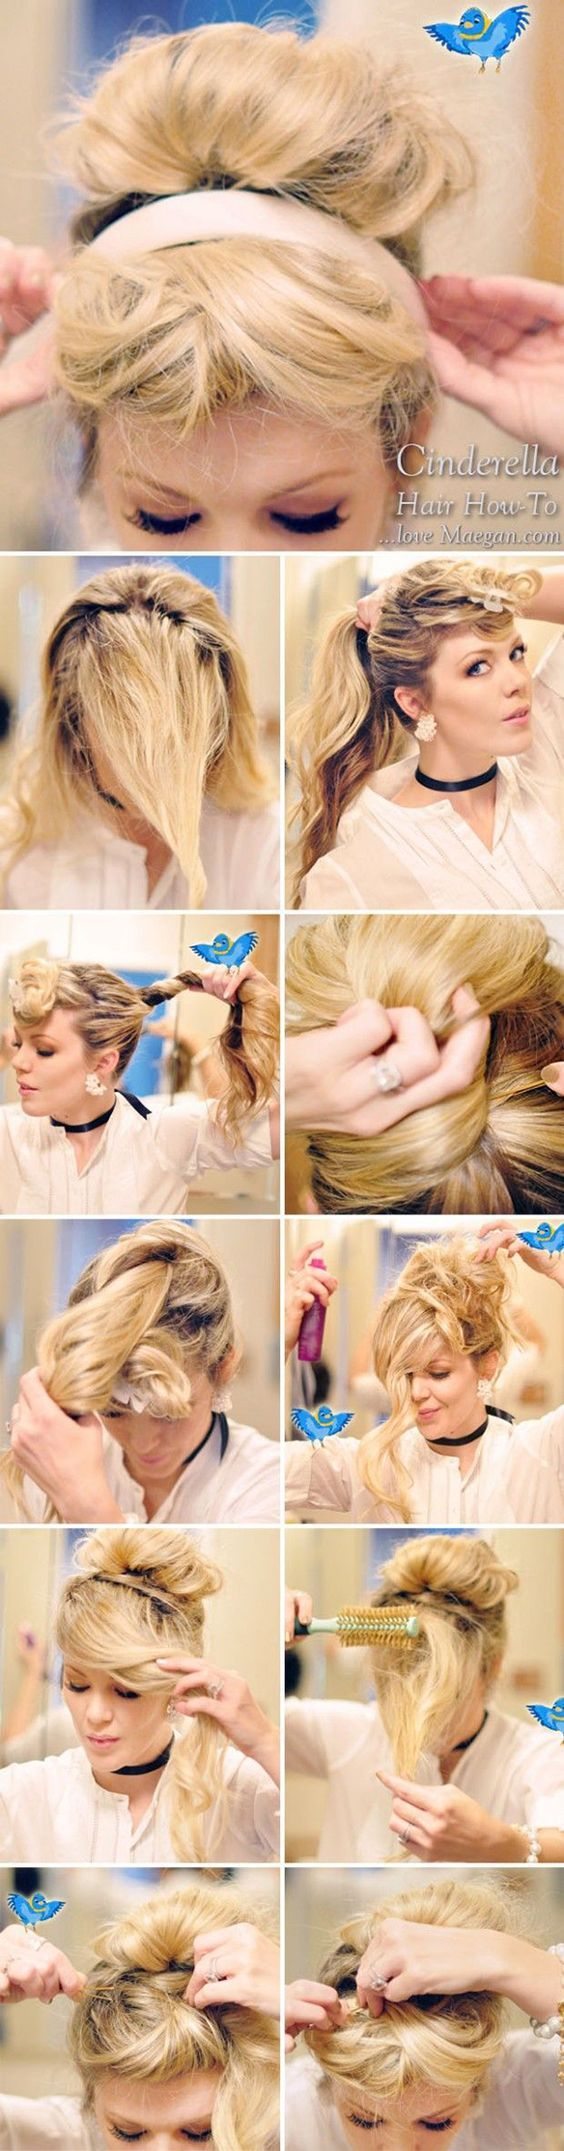 cute hairstyles for teenage girls top hair styles disney